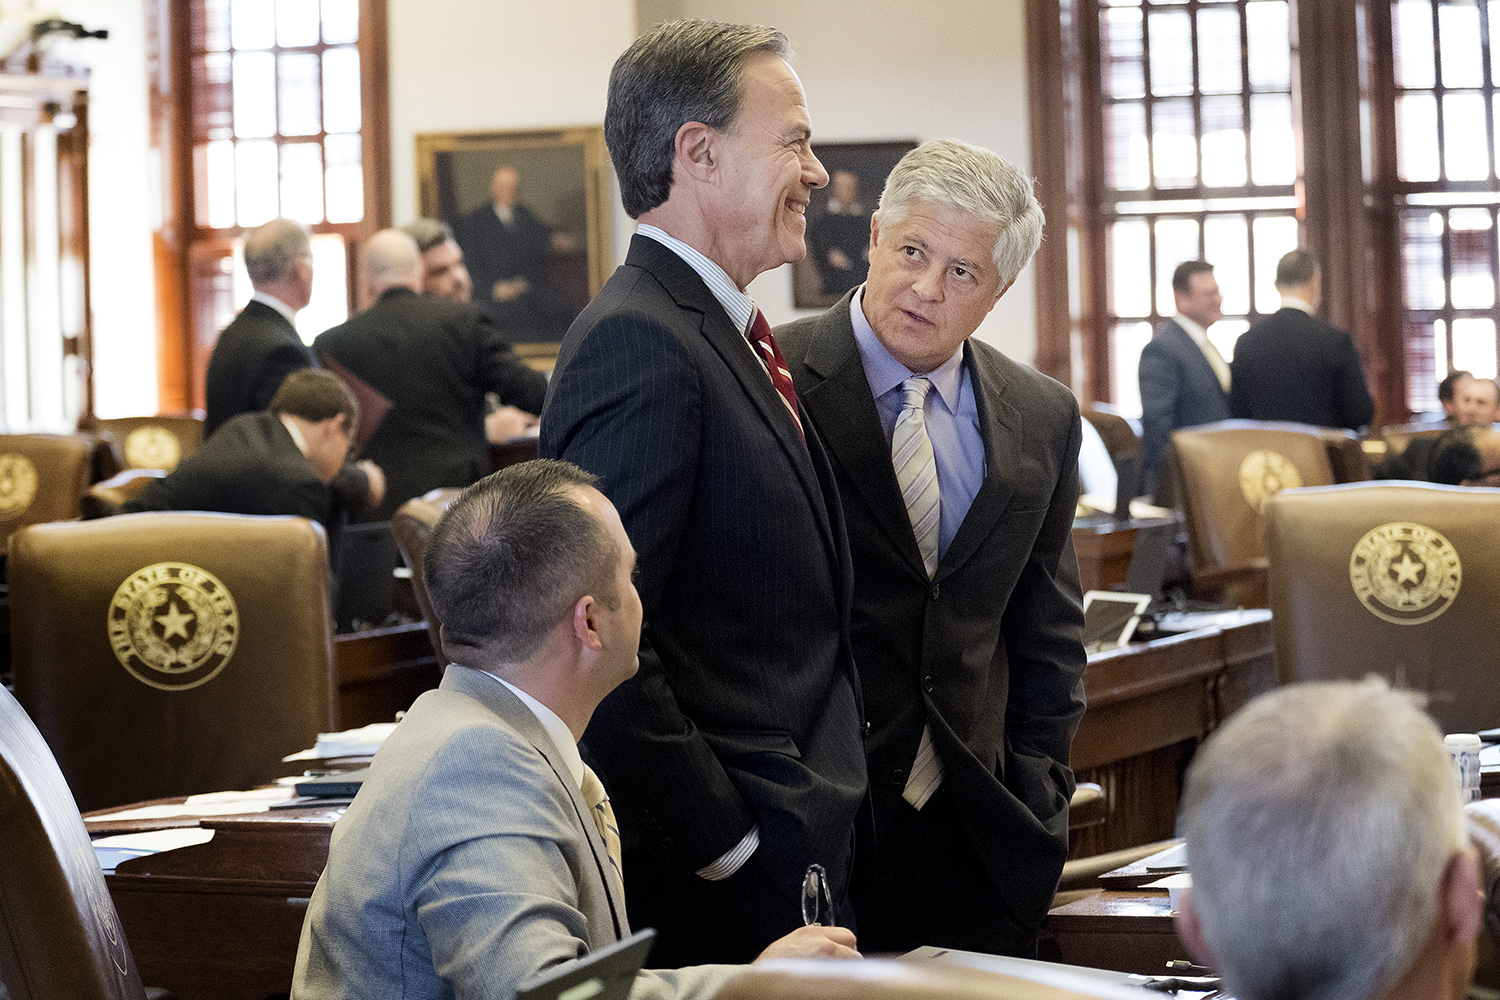 Speaker of the House Joe Straus visits with Rep. John Frullo, R-Lubbock.